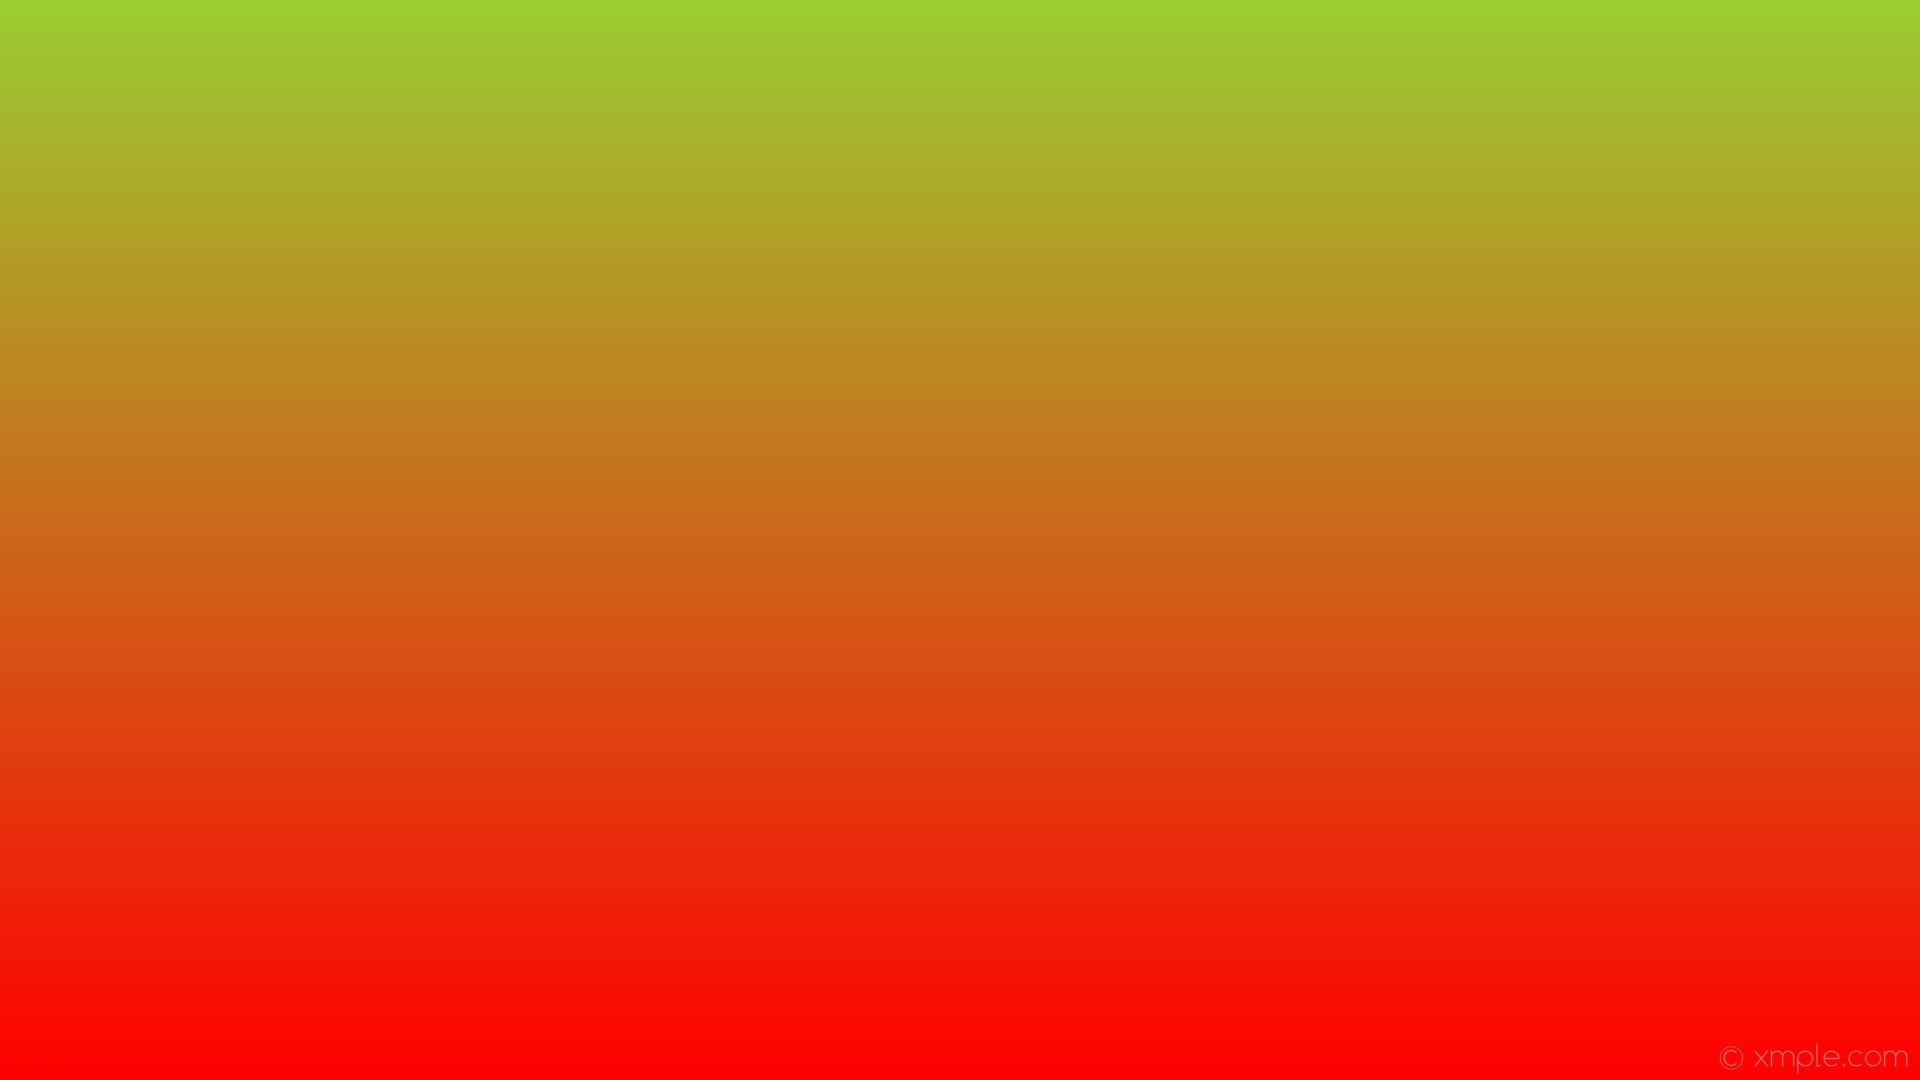 wallpaper gradient linear red green yellow green #ff0000 #9acd32 270°